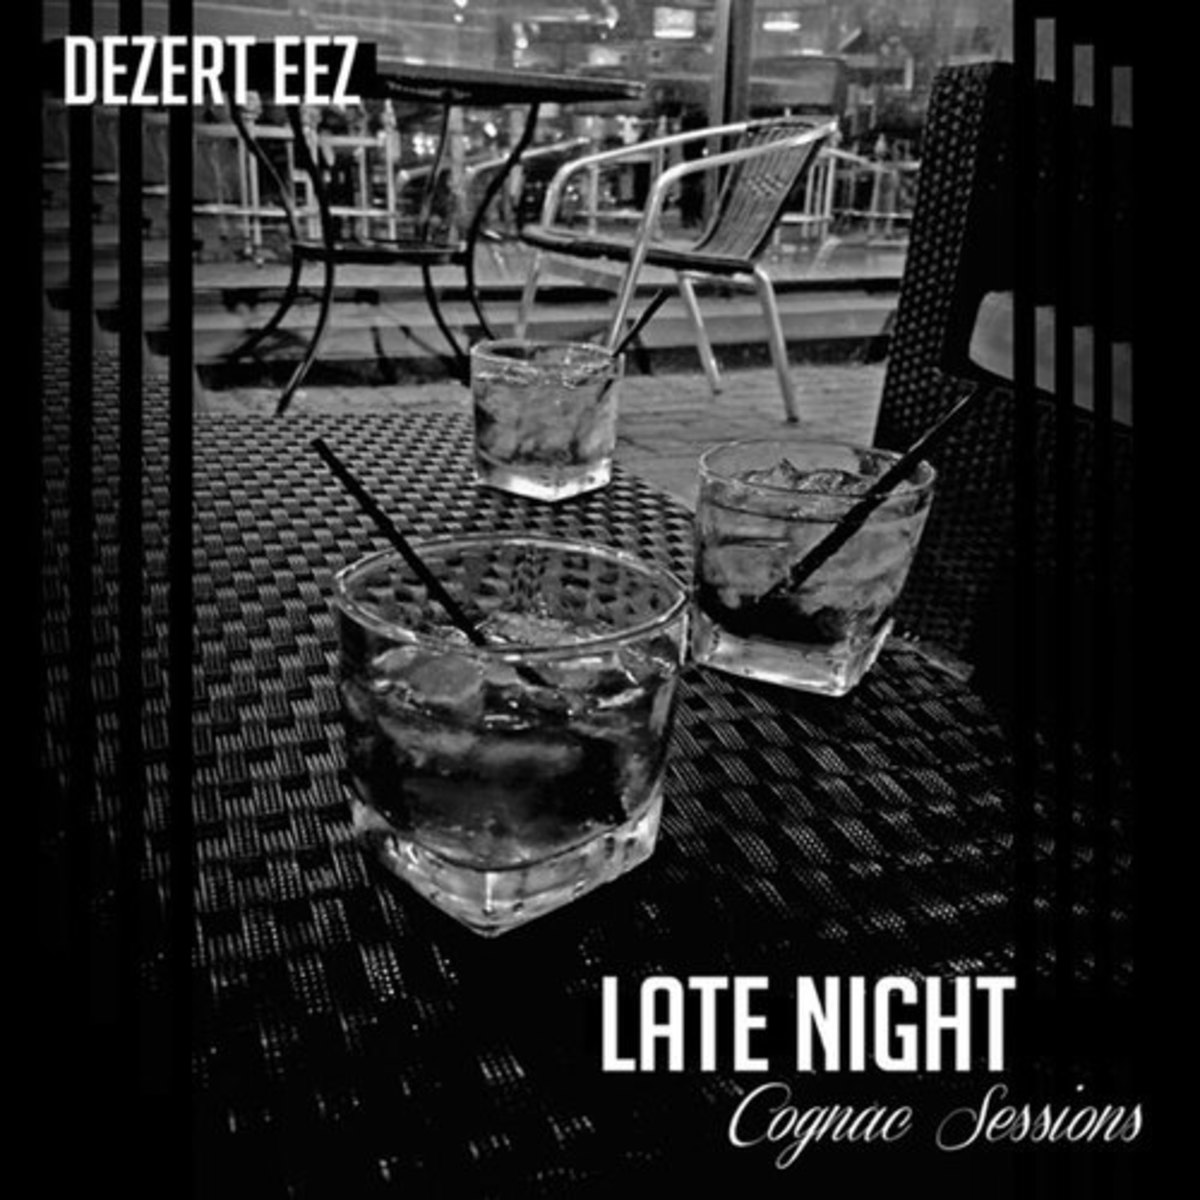 dezert-eez-late-night-cognac-sessions.jpg